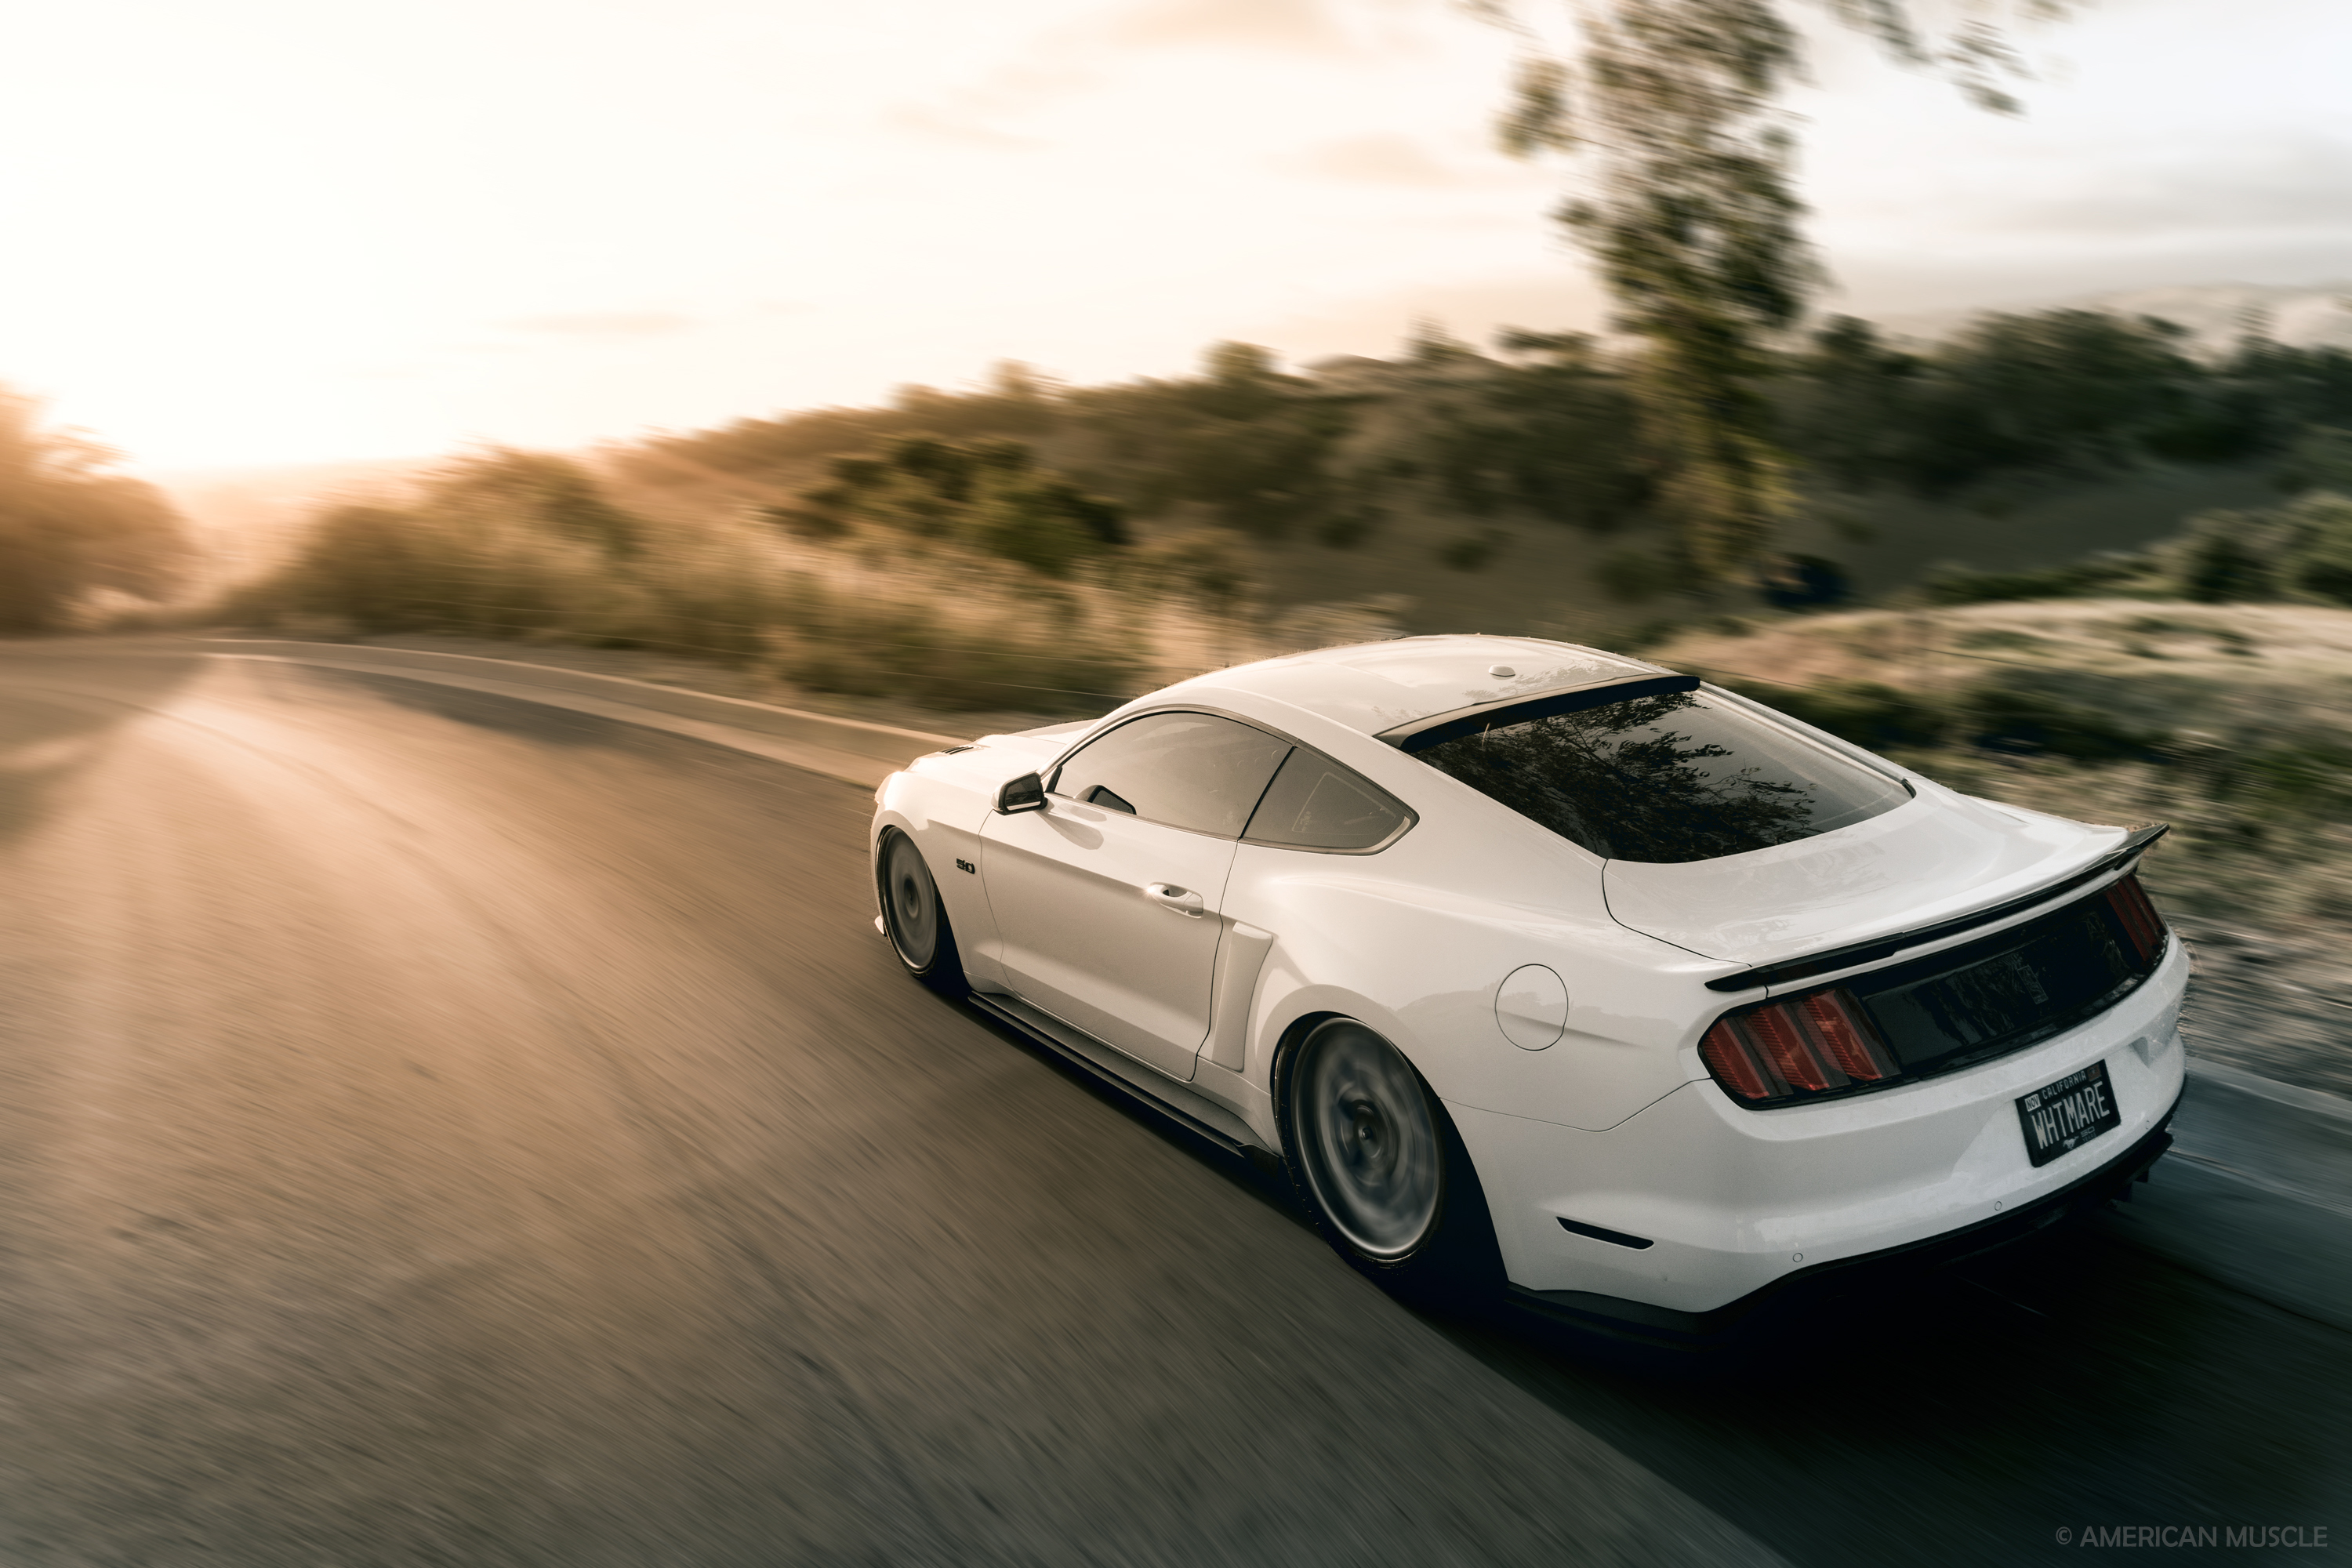 Photographer: Unlisted, Retoucher: Christopher String © AmericanMuscle